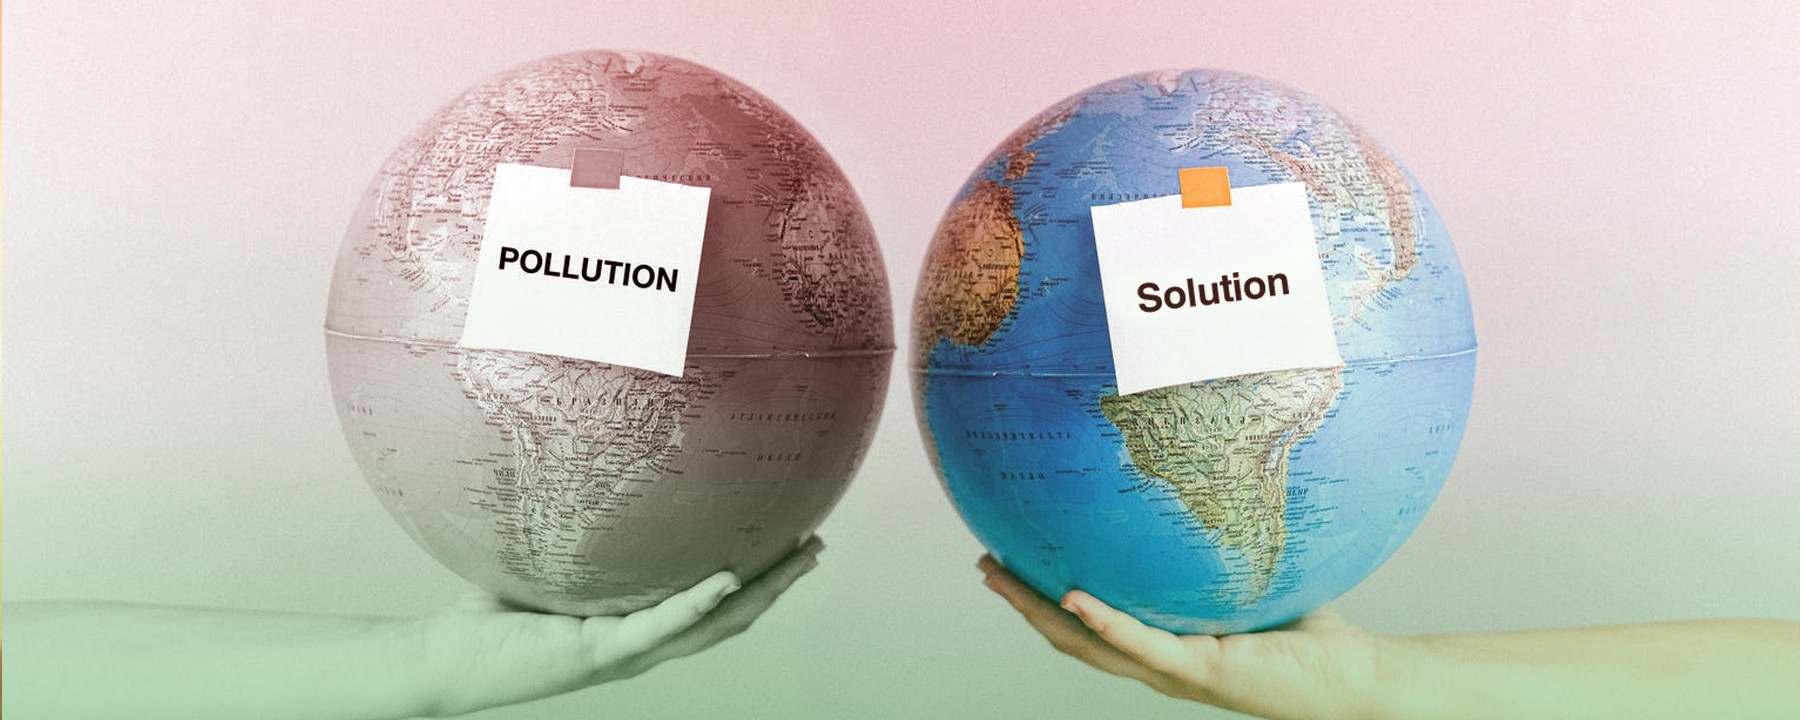 Be the part of Solution, Not the part of Pollution